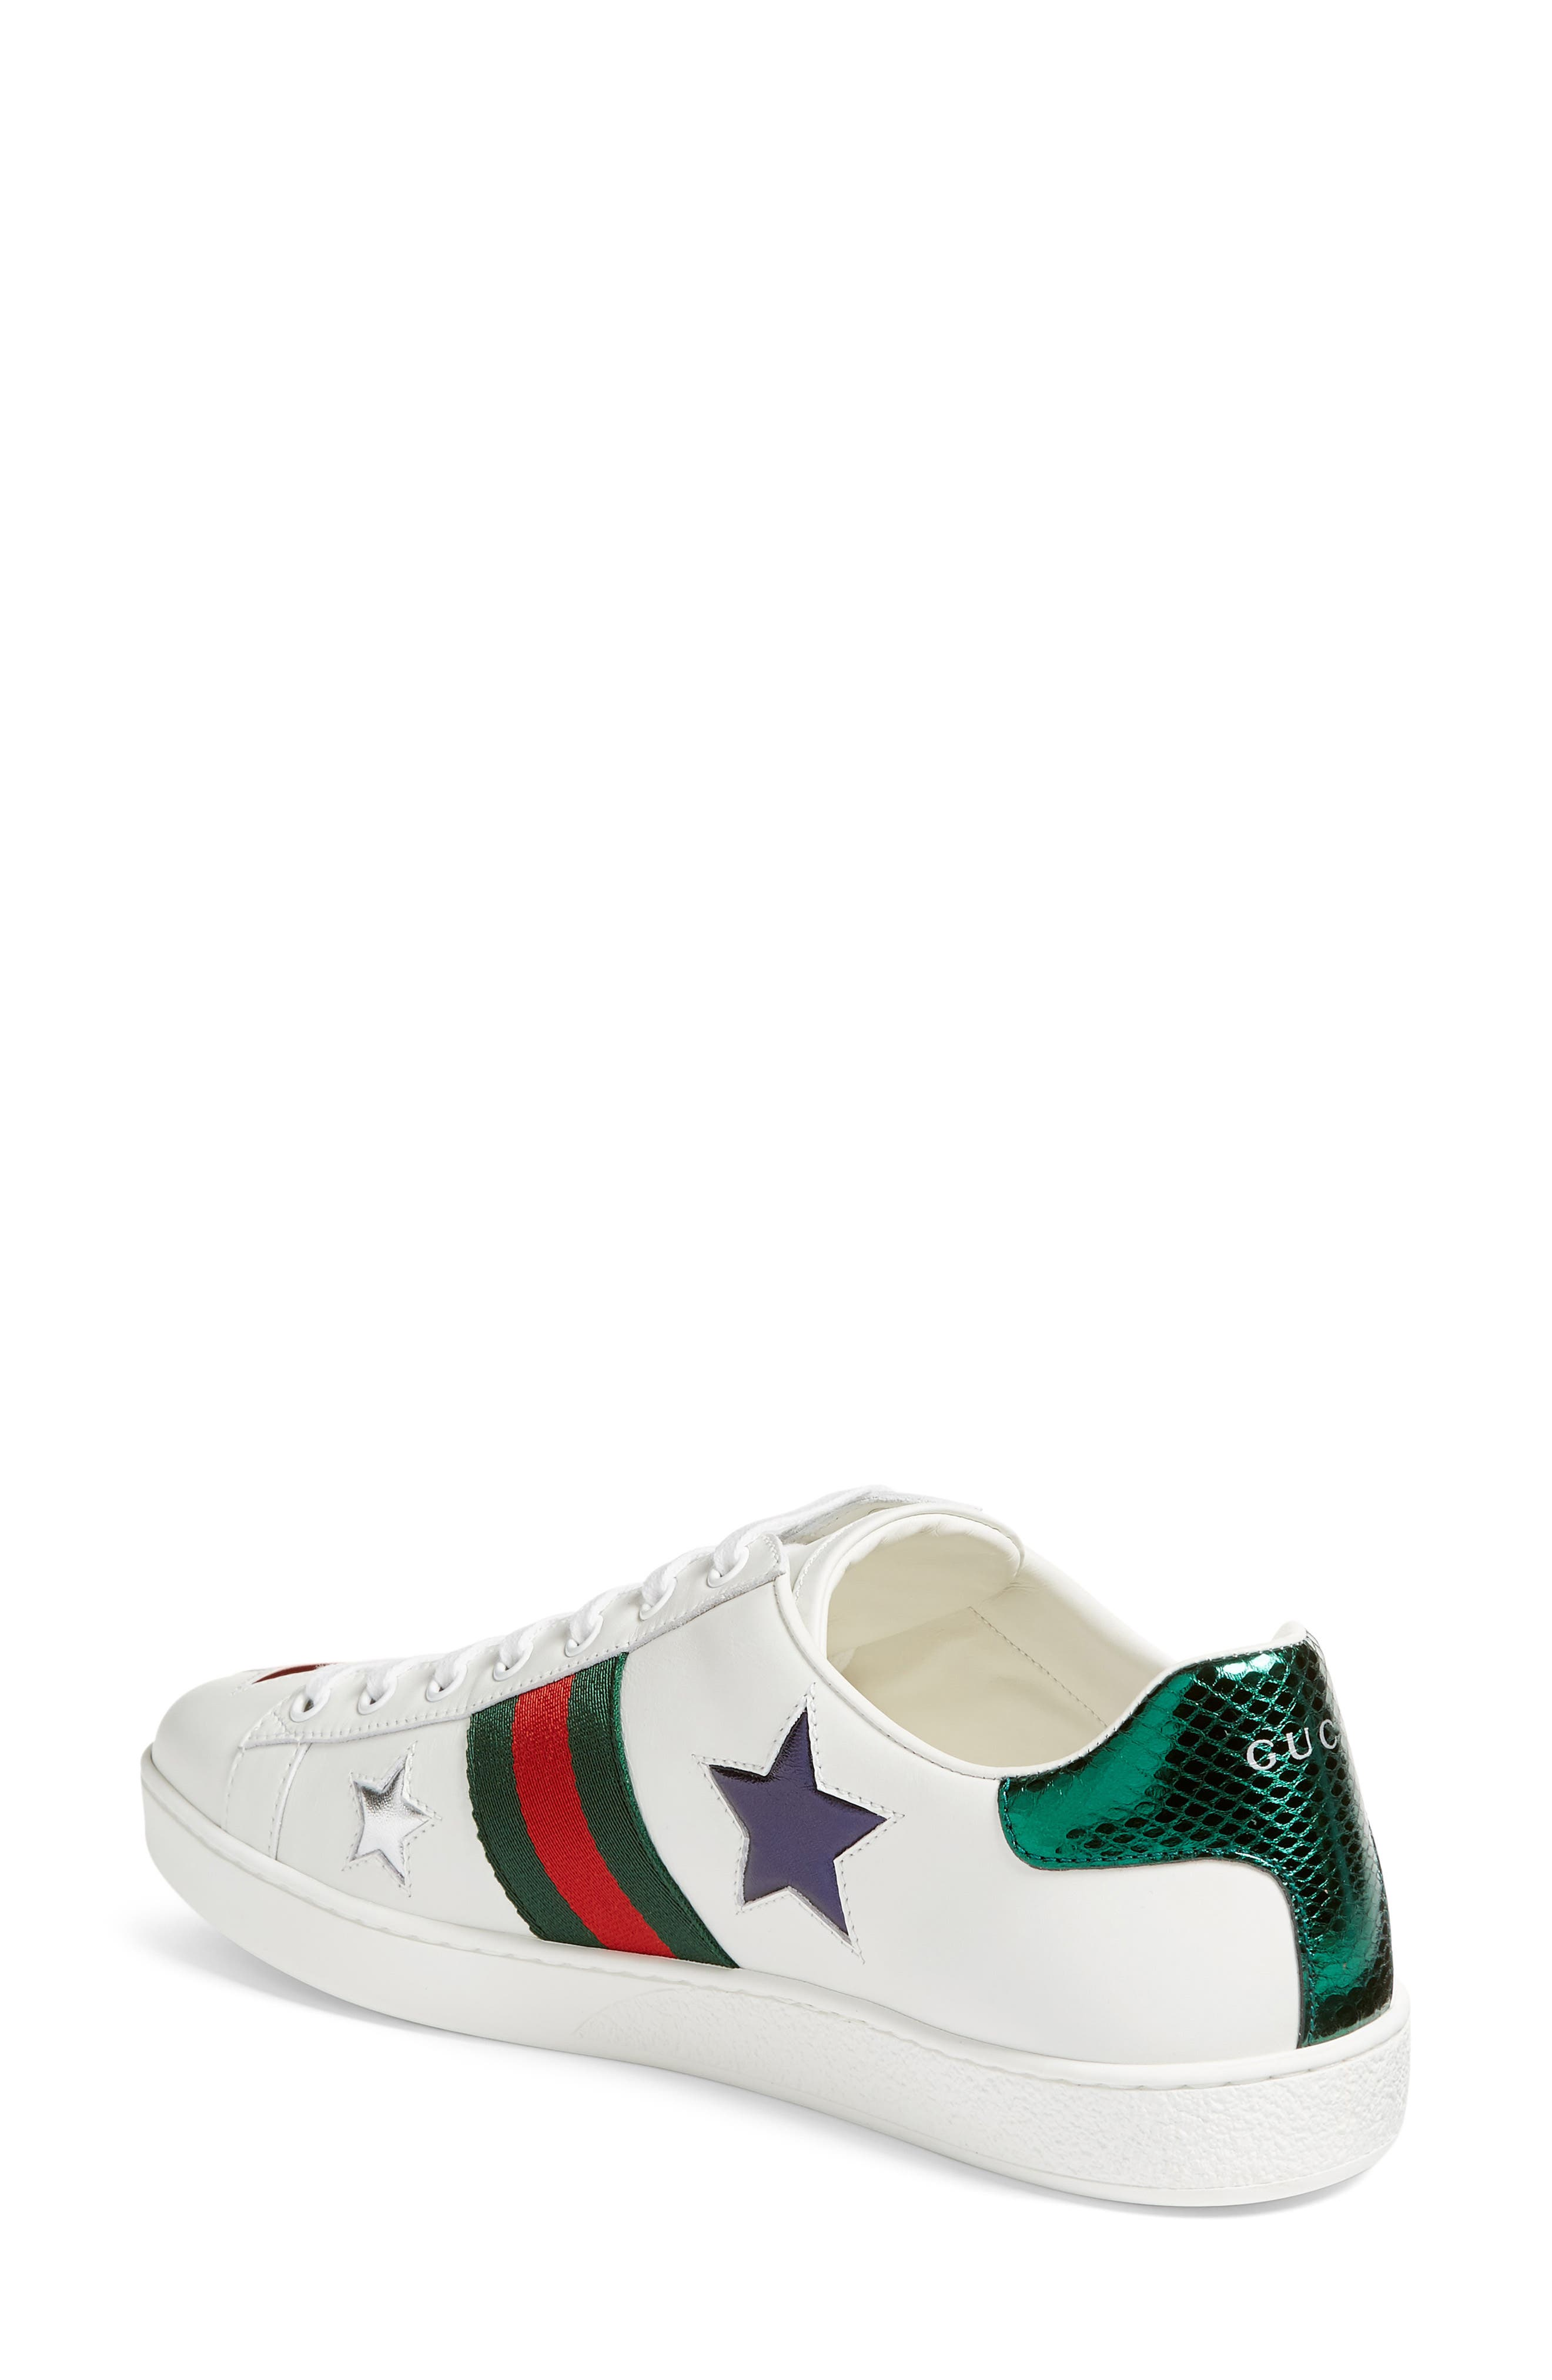 GUCCI, New Ace Star Sneaker, Alternate thumbnail 2, color, WHITE MULTI